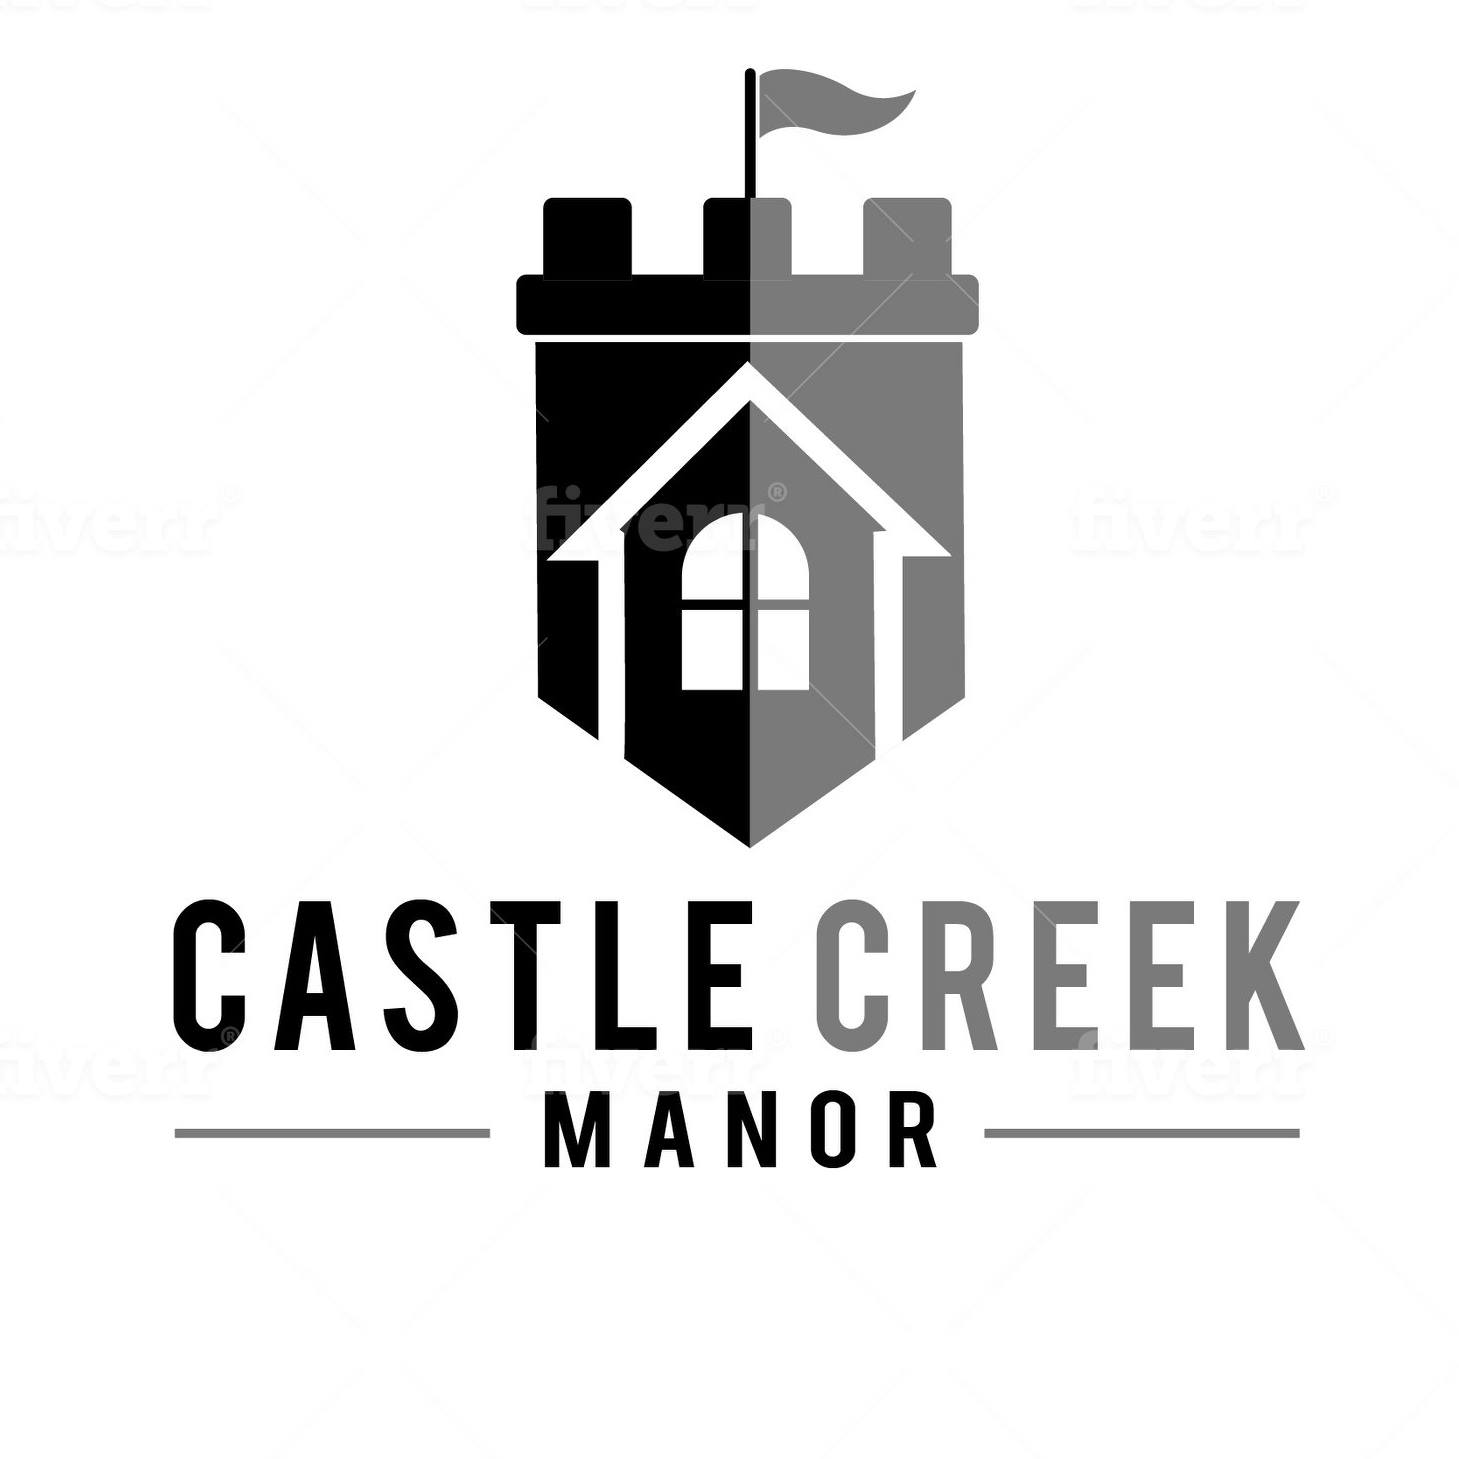 Castle Creek Manor | Winery wedding venue in Grand Junction, Colorado featured on WED West Slope - a directory for wedding vendors.